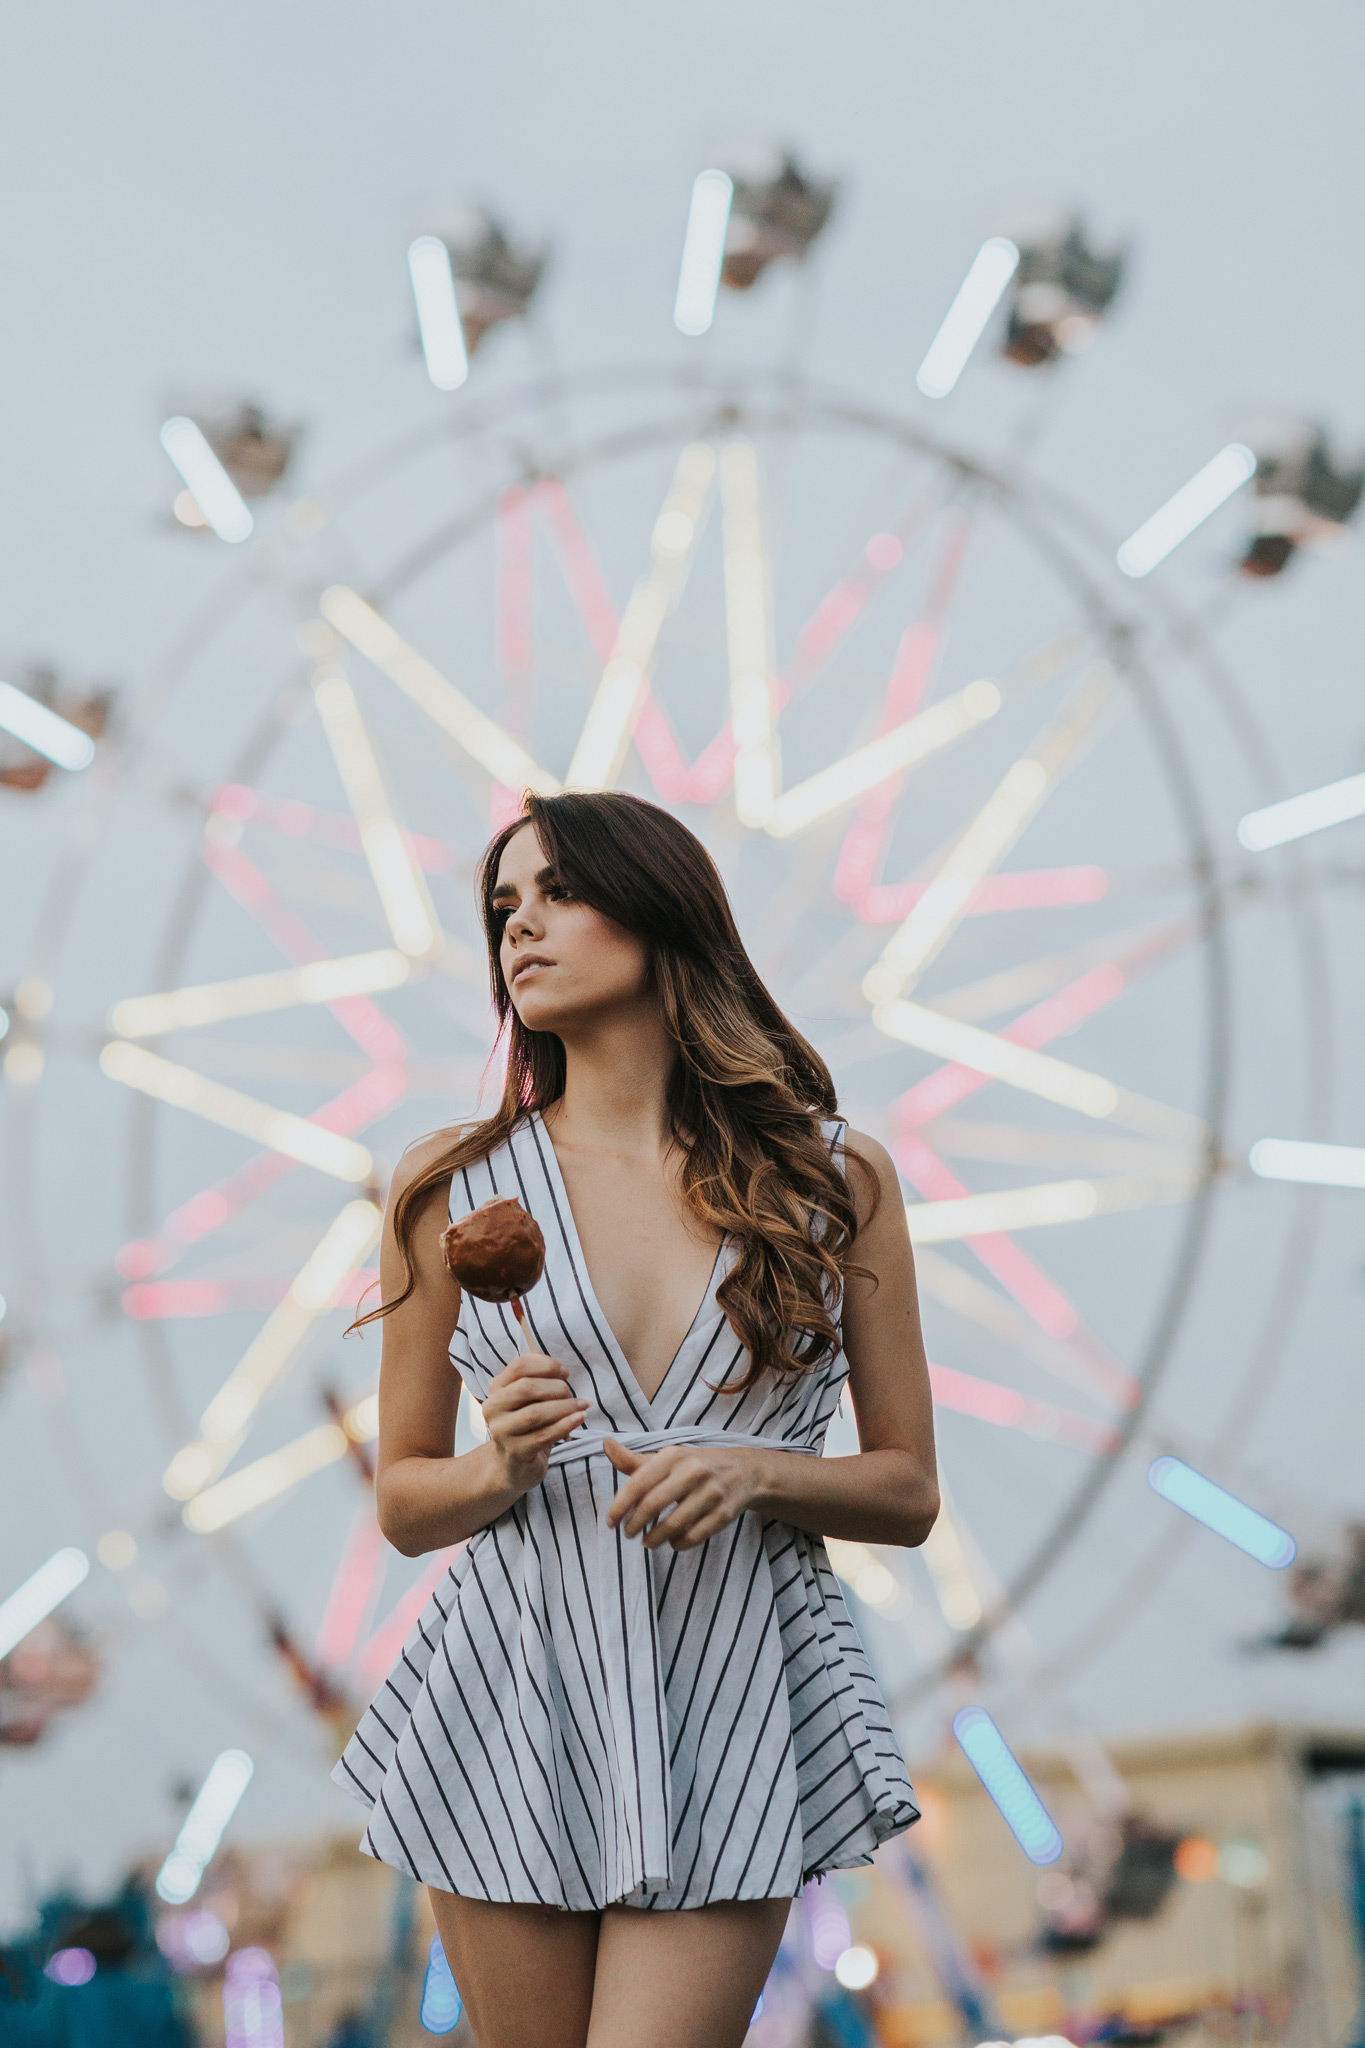 model holding candy apple in front of ferris wheel lights